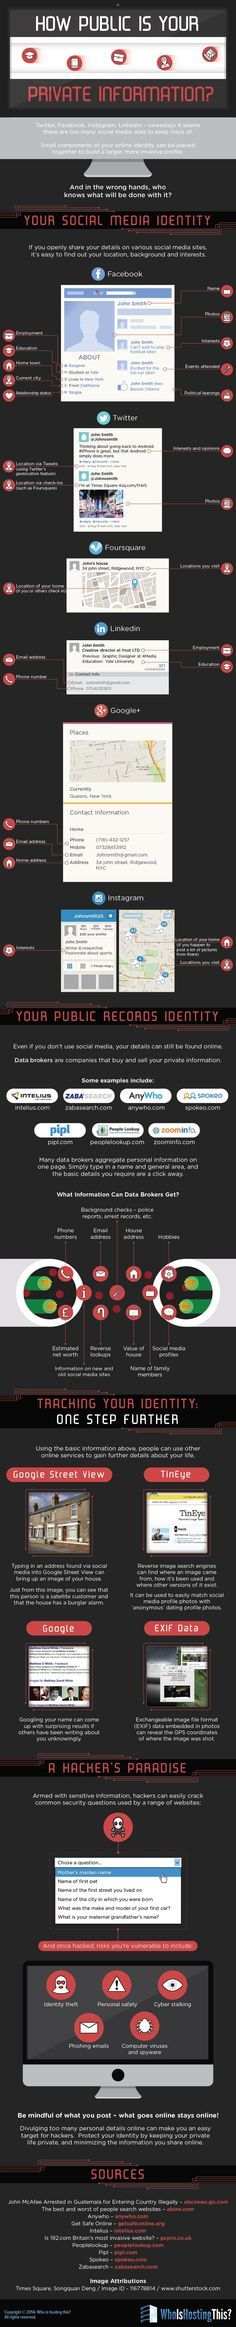 How public is your private information? - #infographic #socialmedia #internet